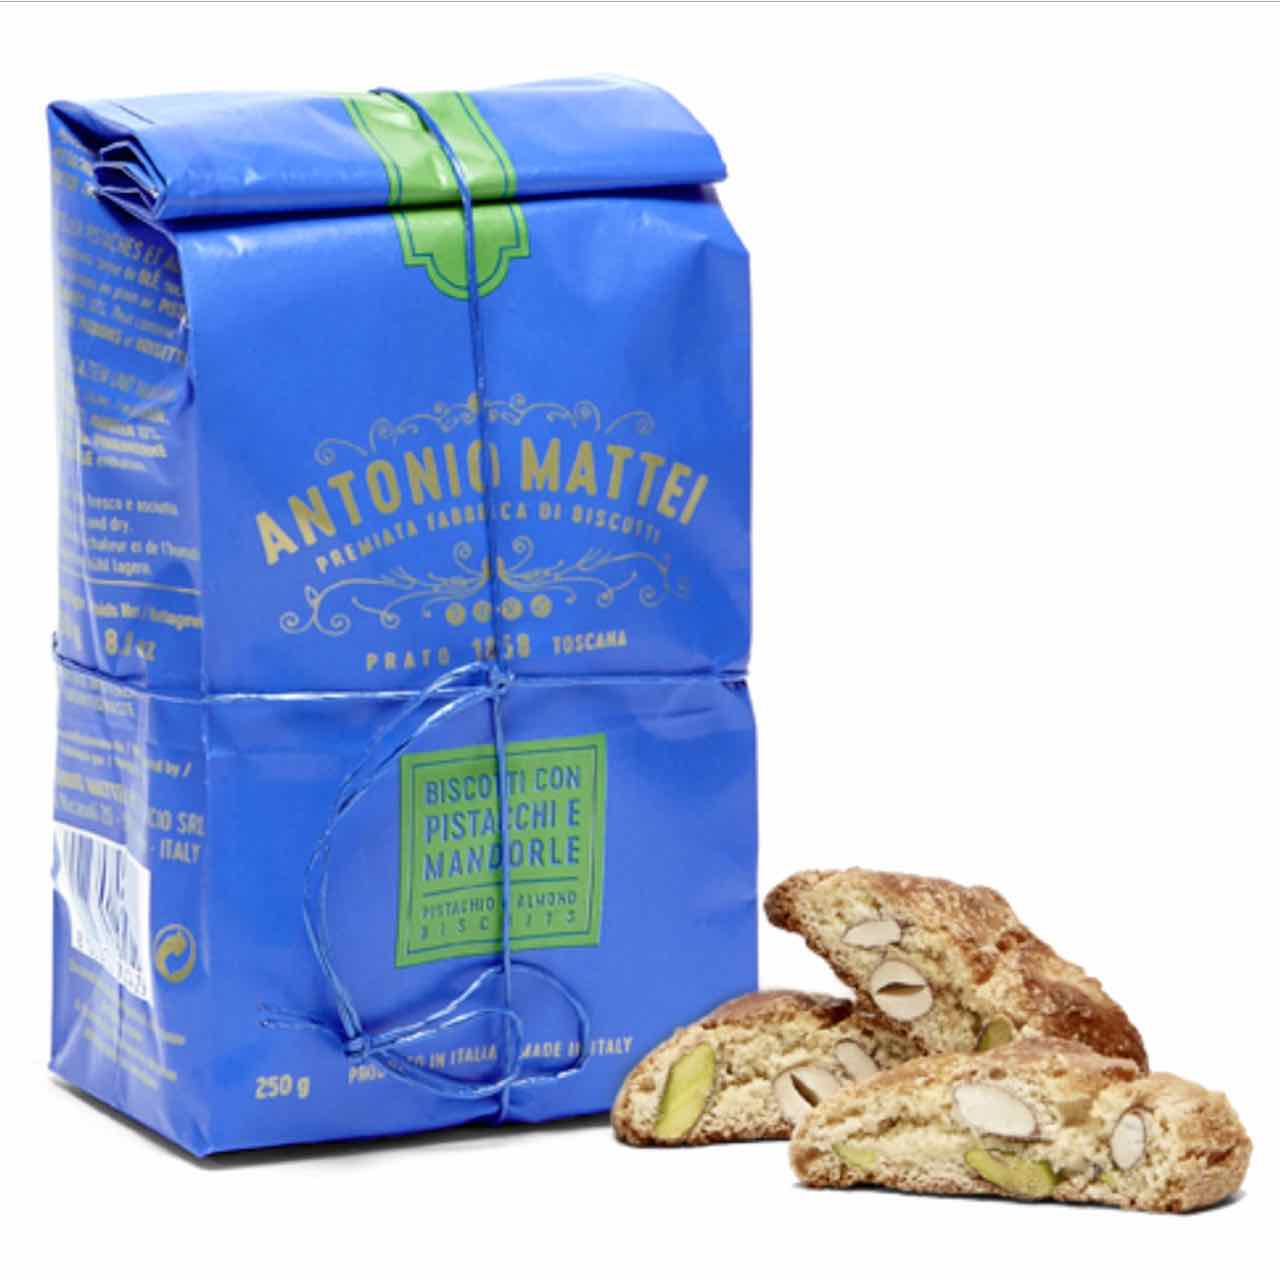 Antonio Mattei pistachio almond biscuits – Gustorotondo – best Italian food – Gustorotondo online food shop – authentic Italian artisan food